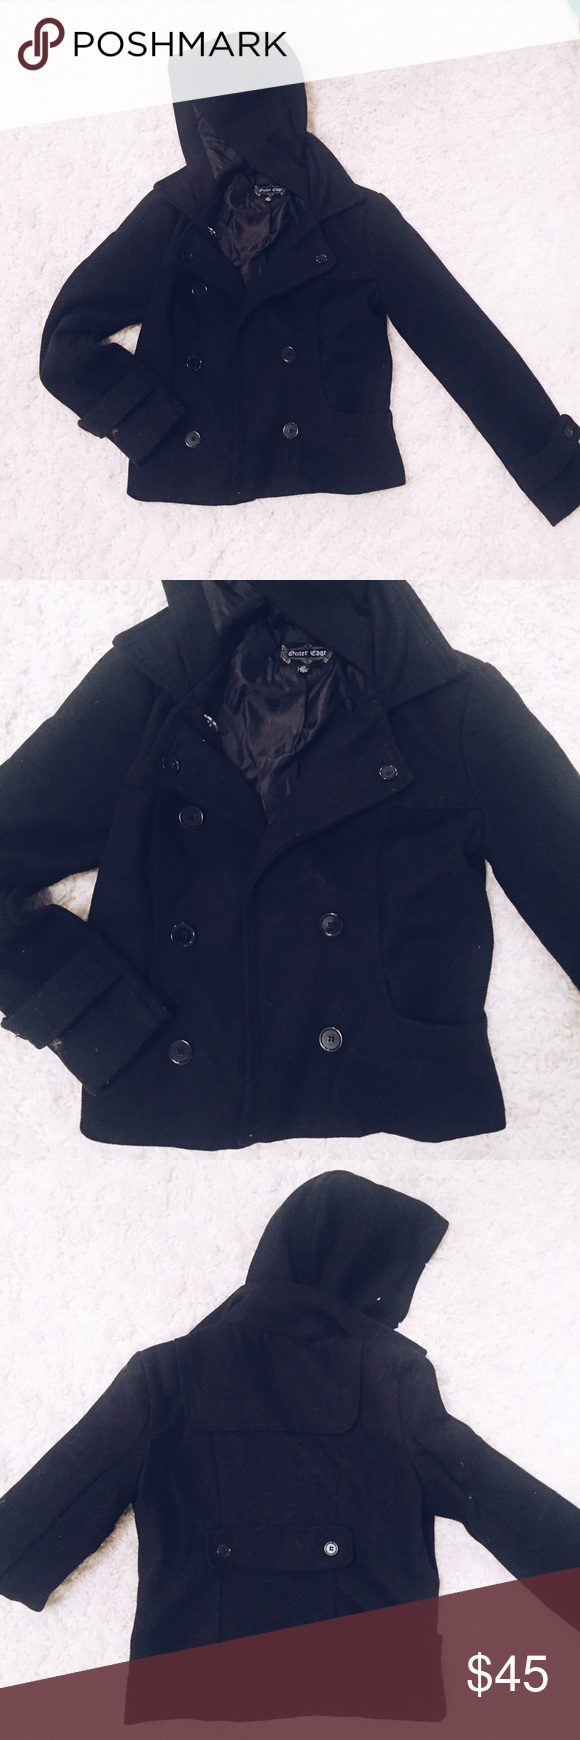 Pea coat | Pacsun and Hoods